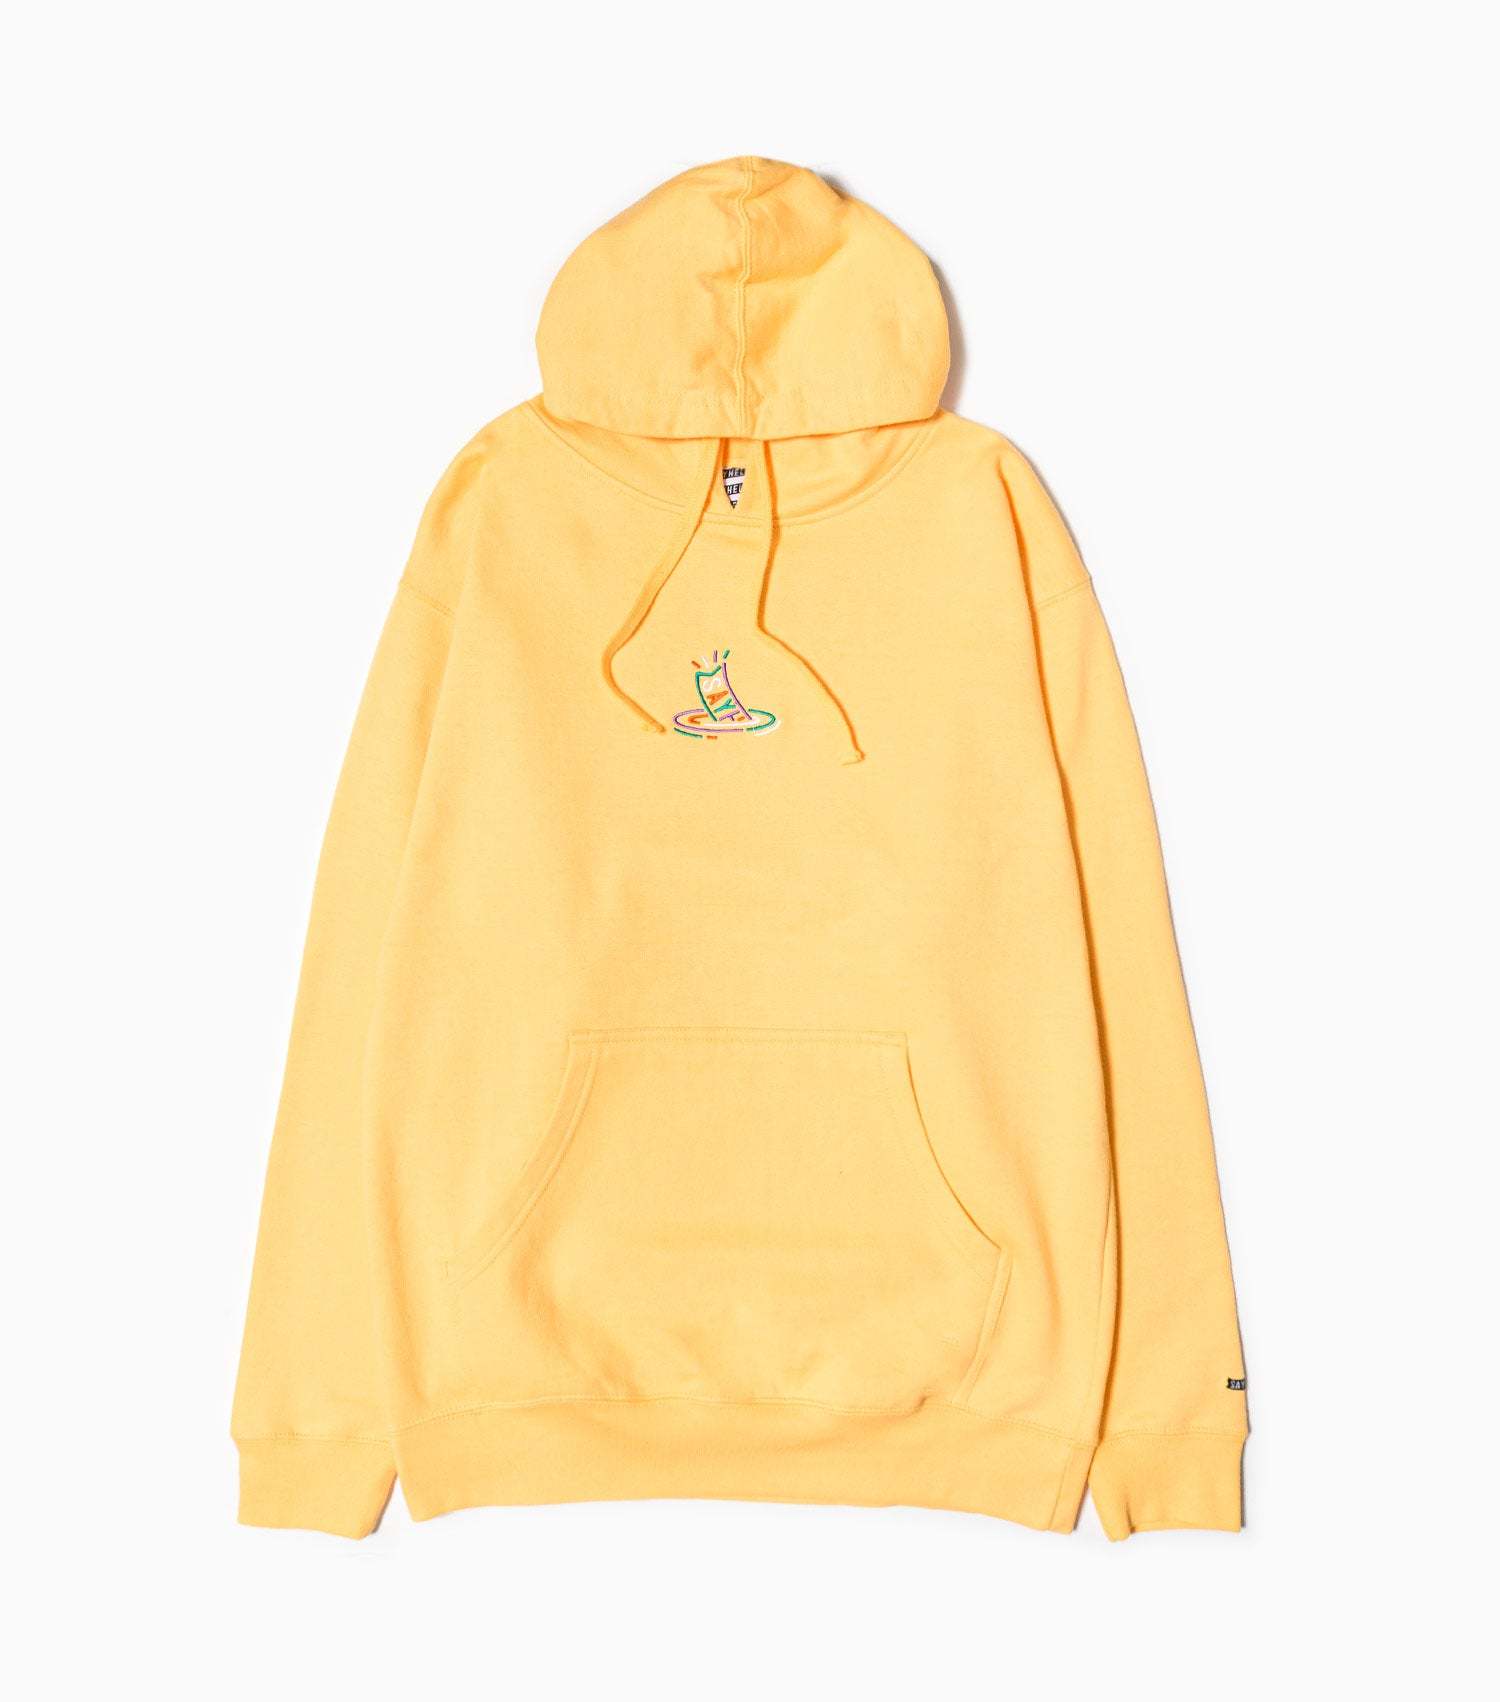 Sayhello G.D.T.S Logo Embroidery Hoodie - Peach